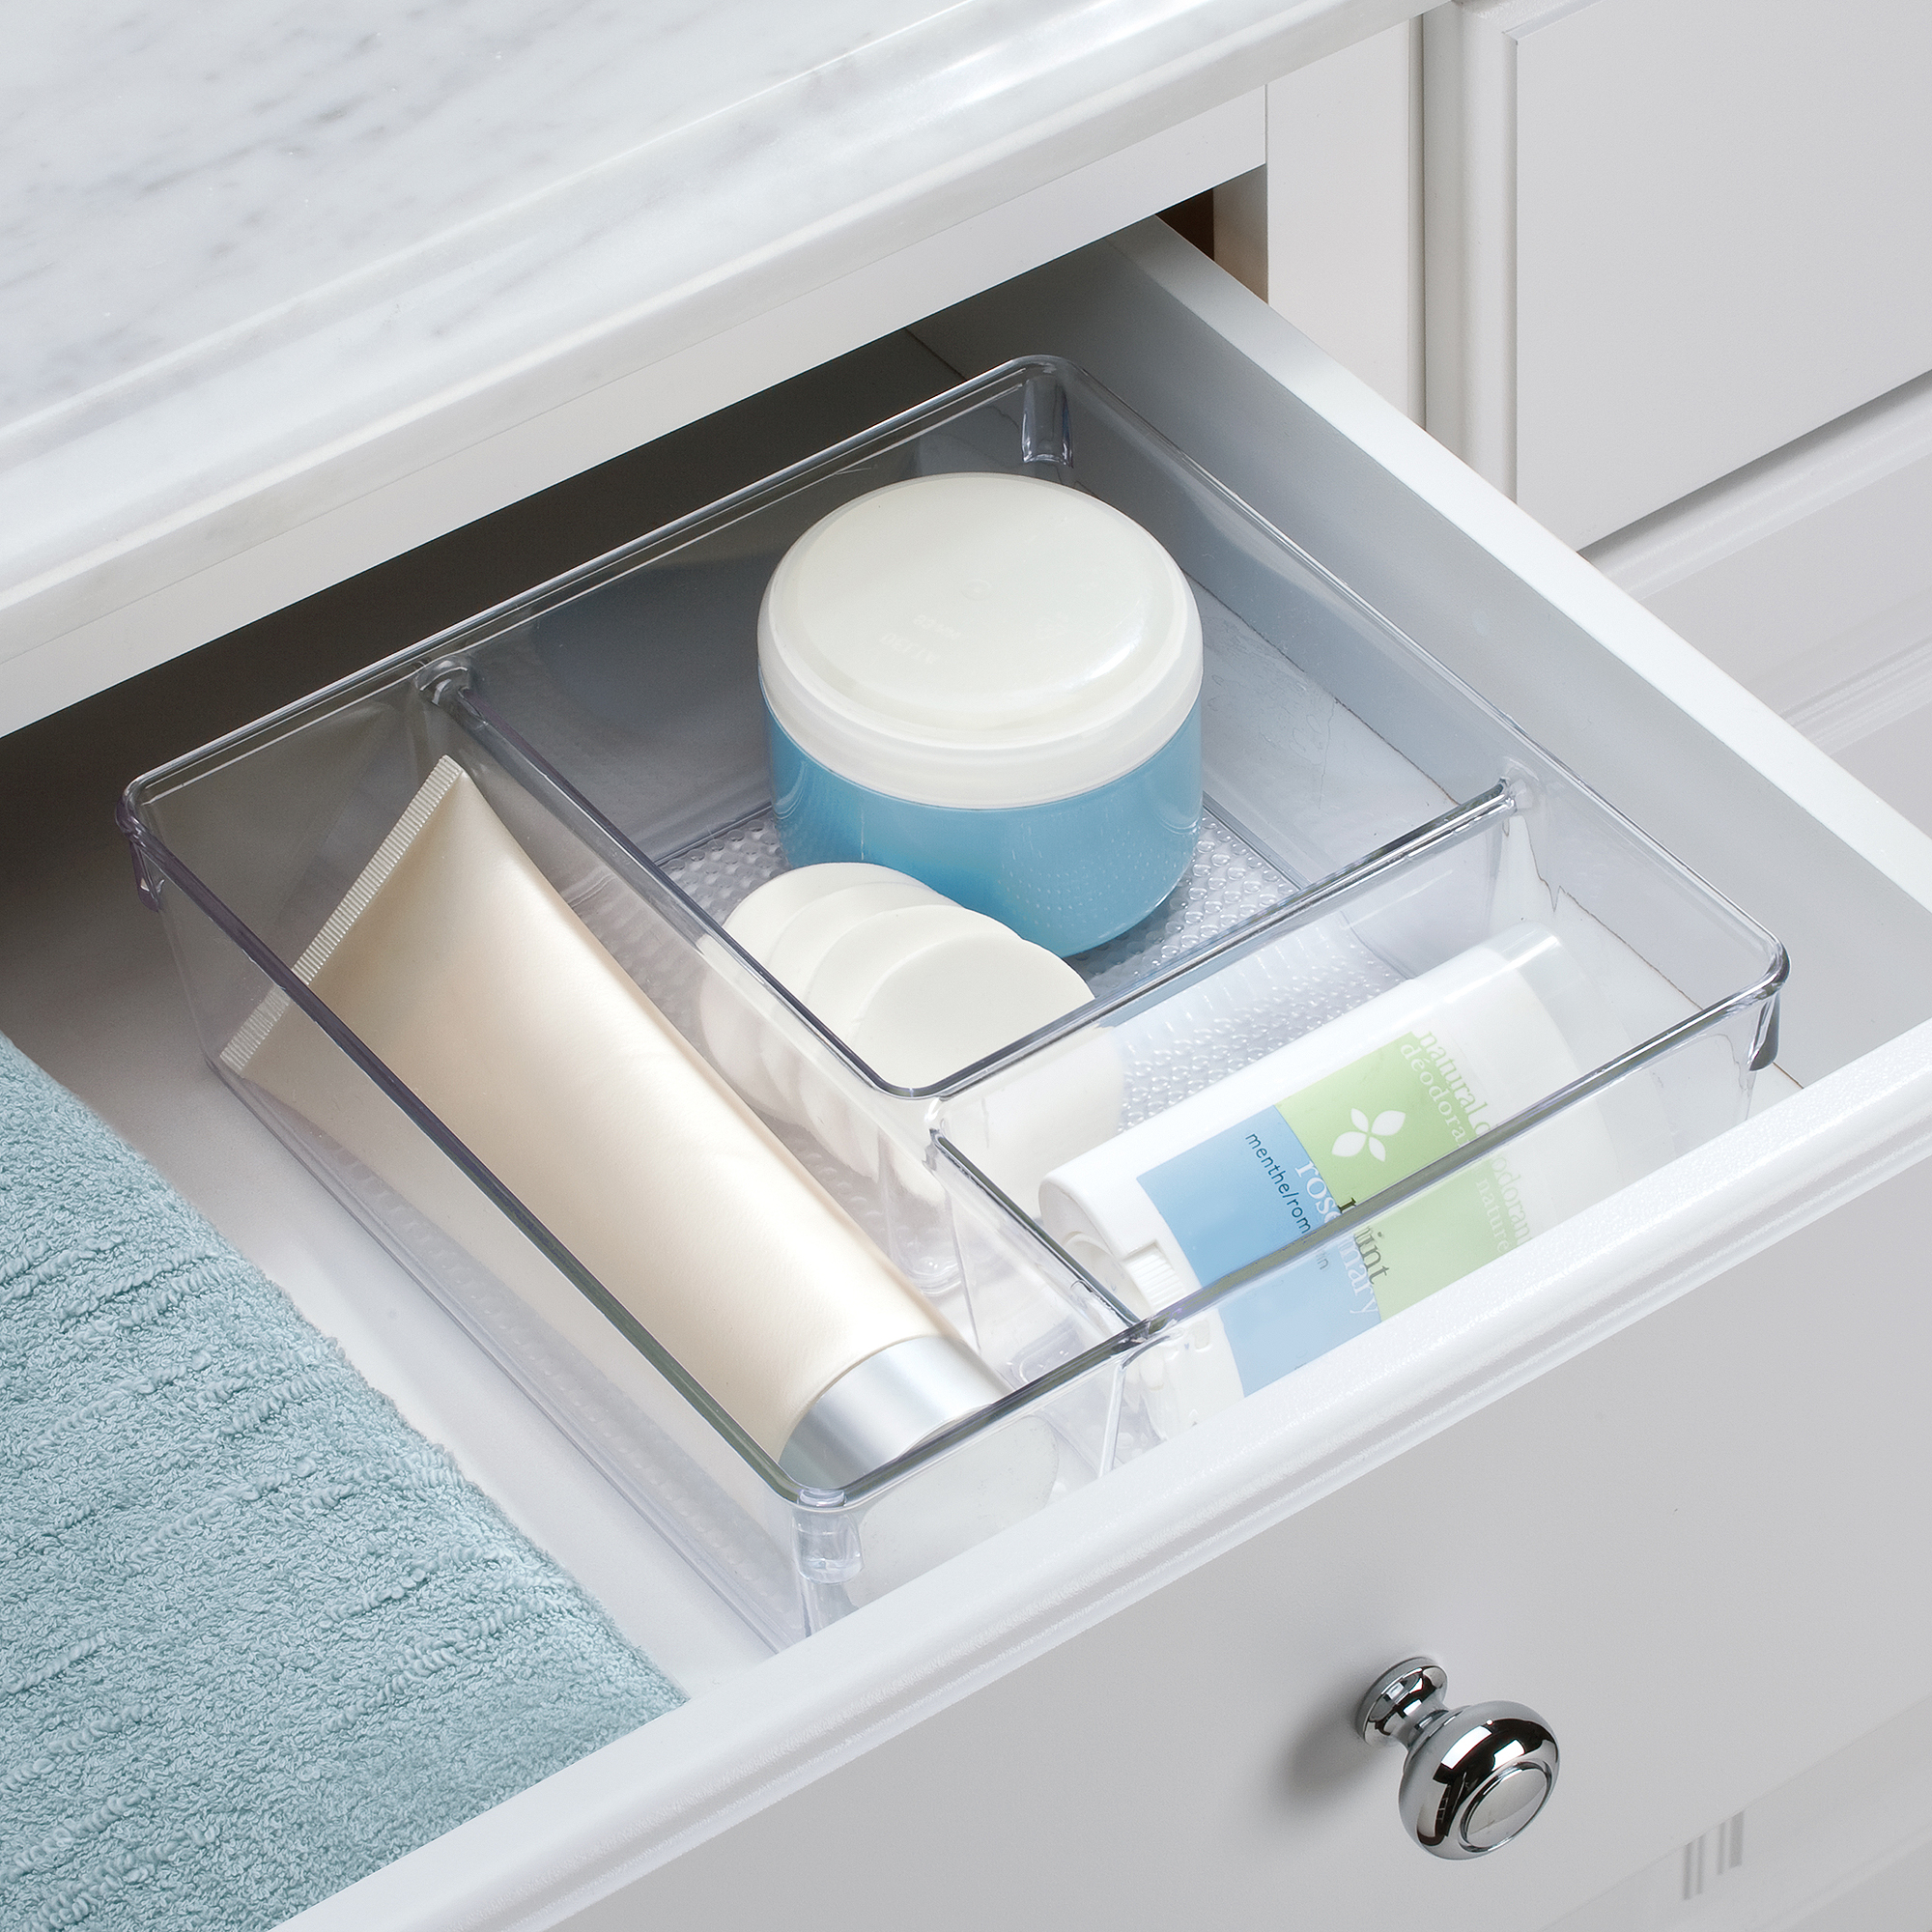 InterDesign Clarity Cosmetic Organizer for Vanity Cabinet to Hold Makeup, Beauty Products, Clear